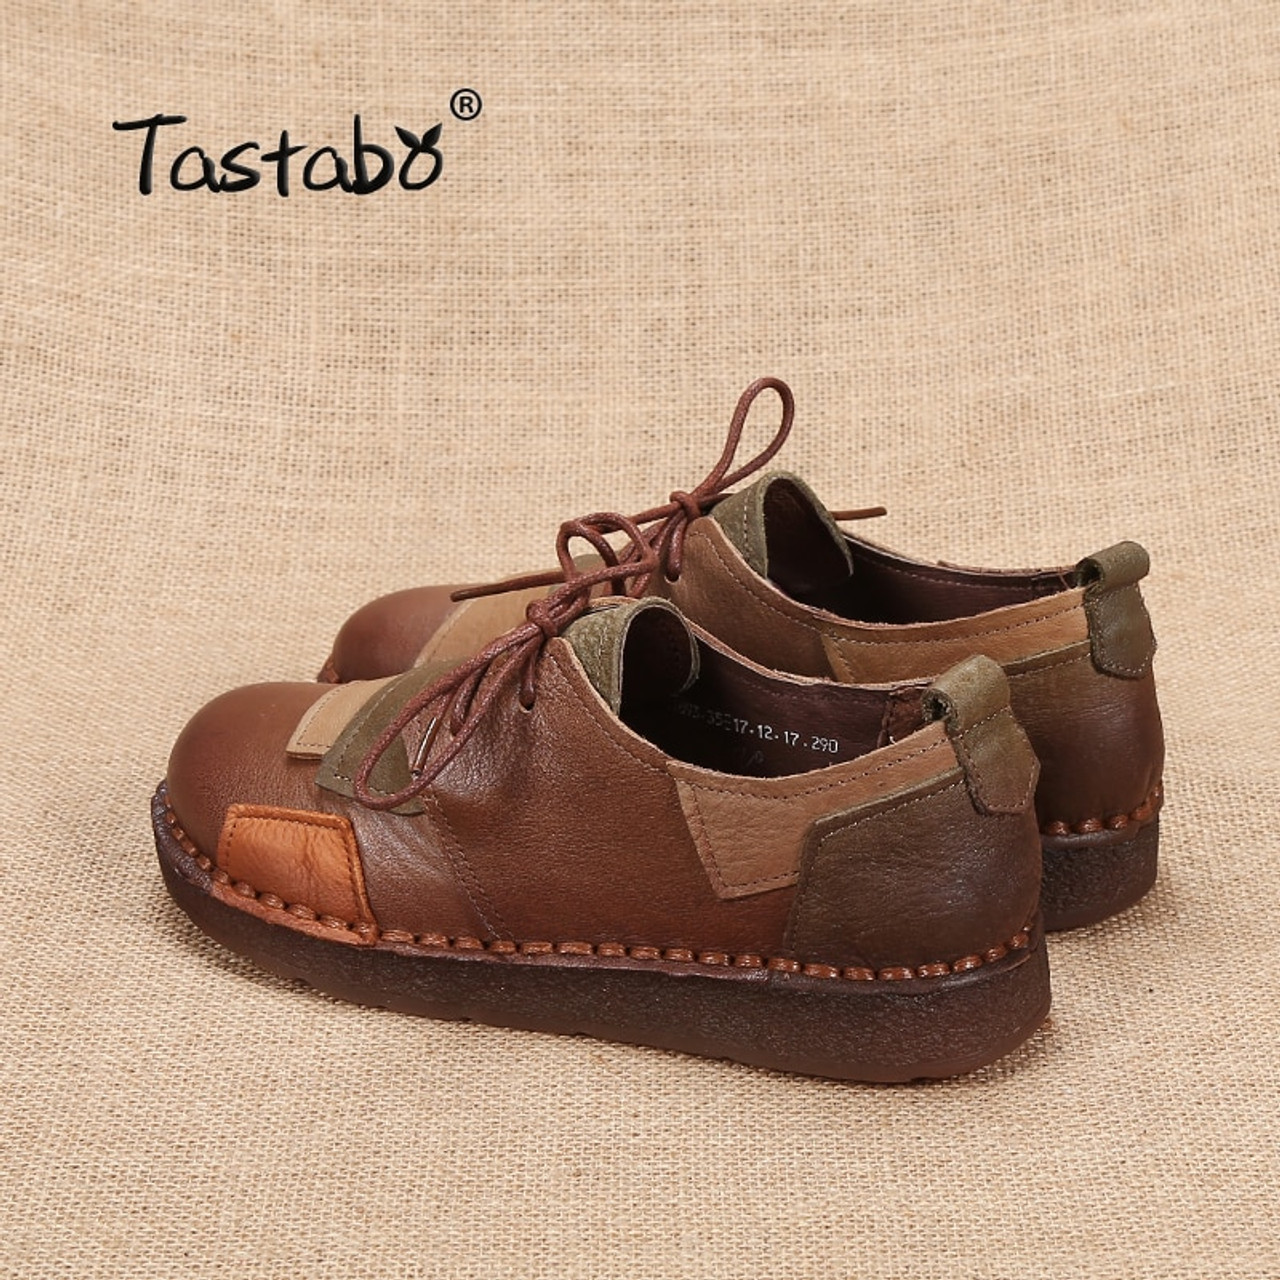 75f41f43b6 ... Tastabo Genuine Leather Flat Shoe Pregnant Women Shoe Mother Driving  Shoe Female Moccasins Women Flats Hand ...